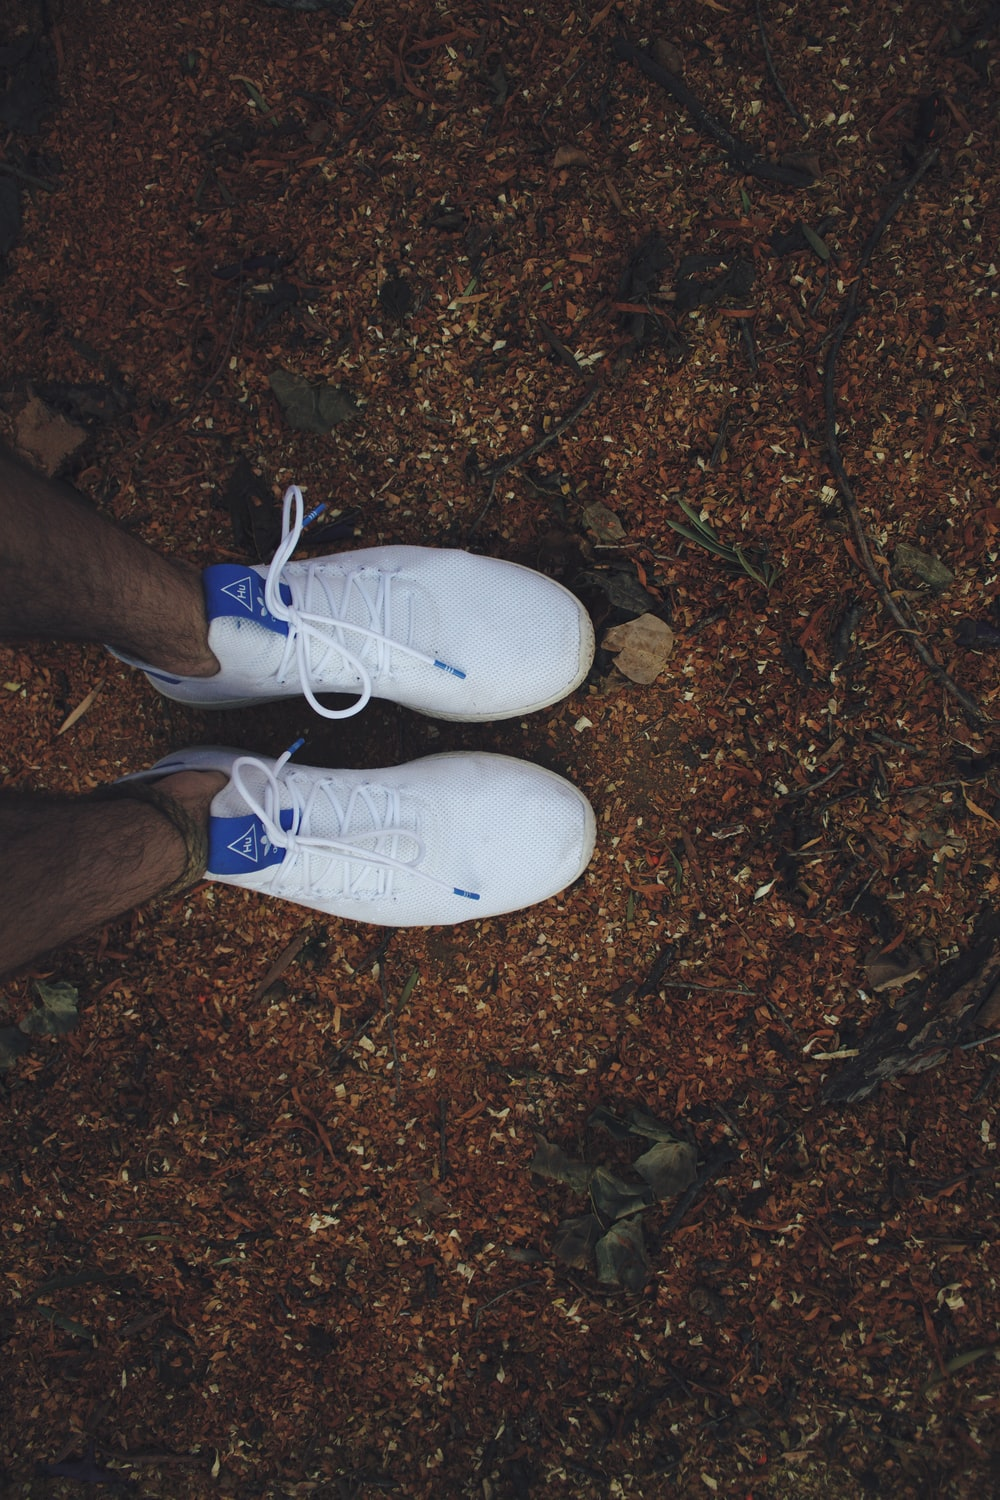 person wearing white and blue nike sneakers